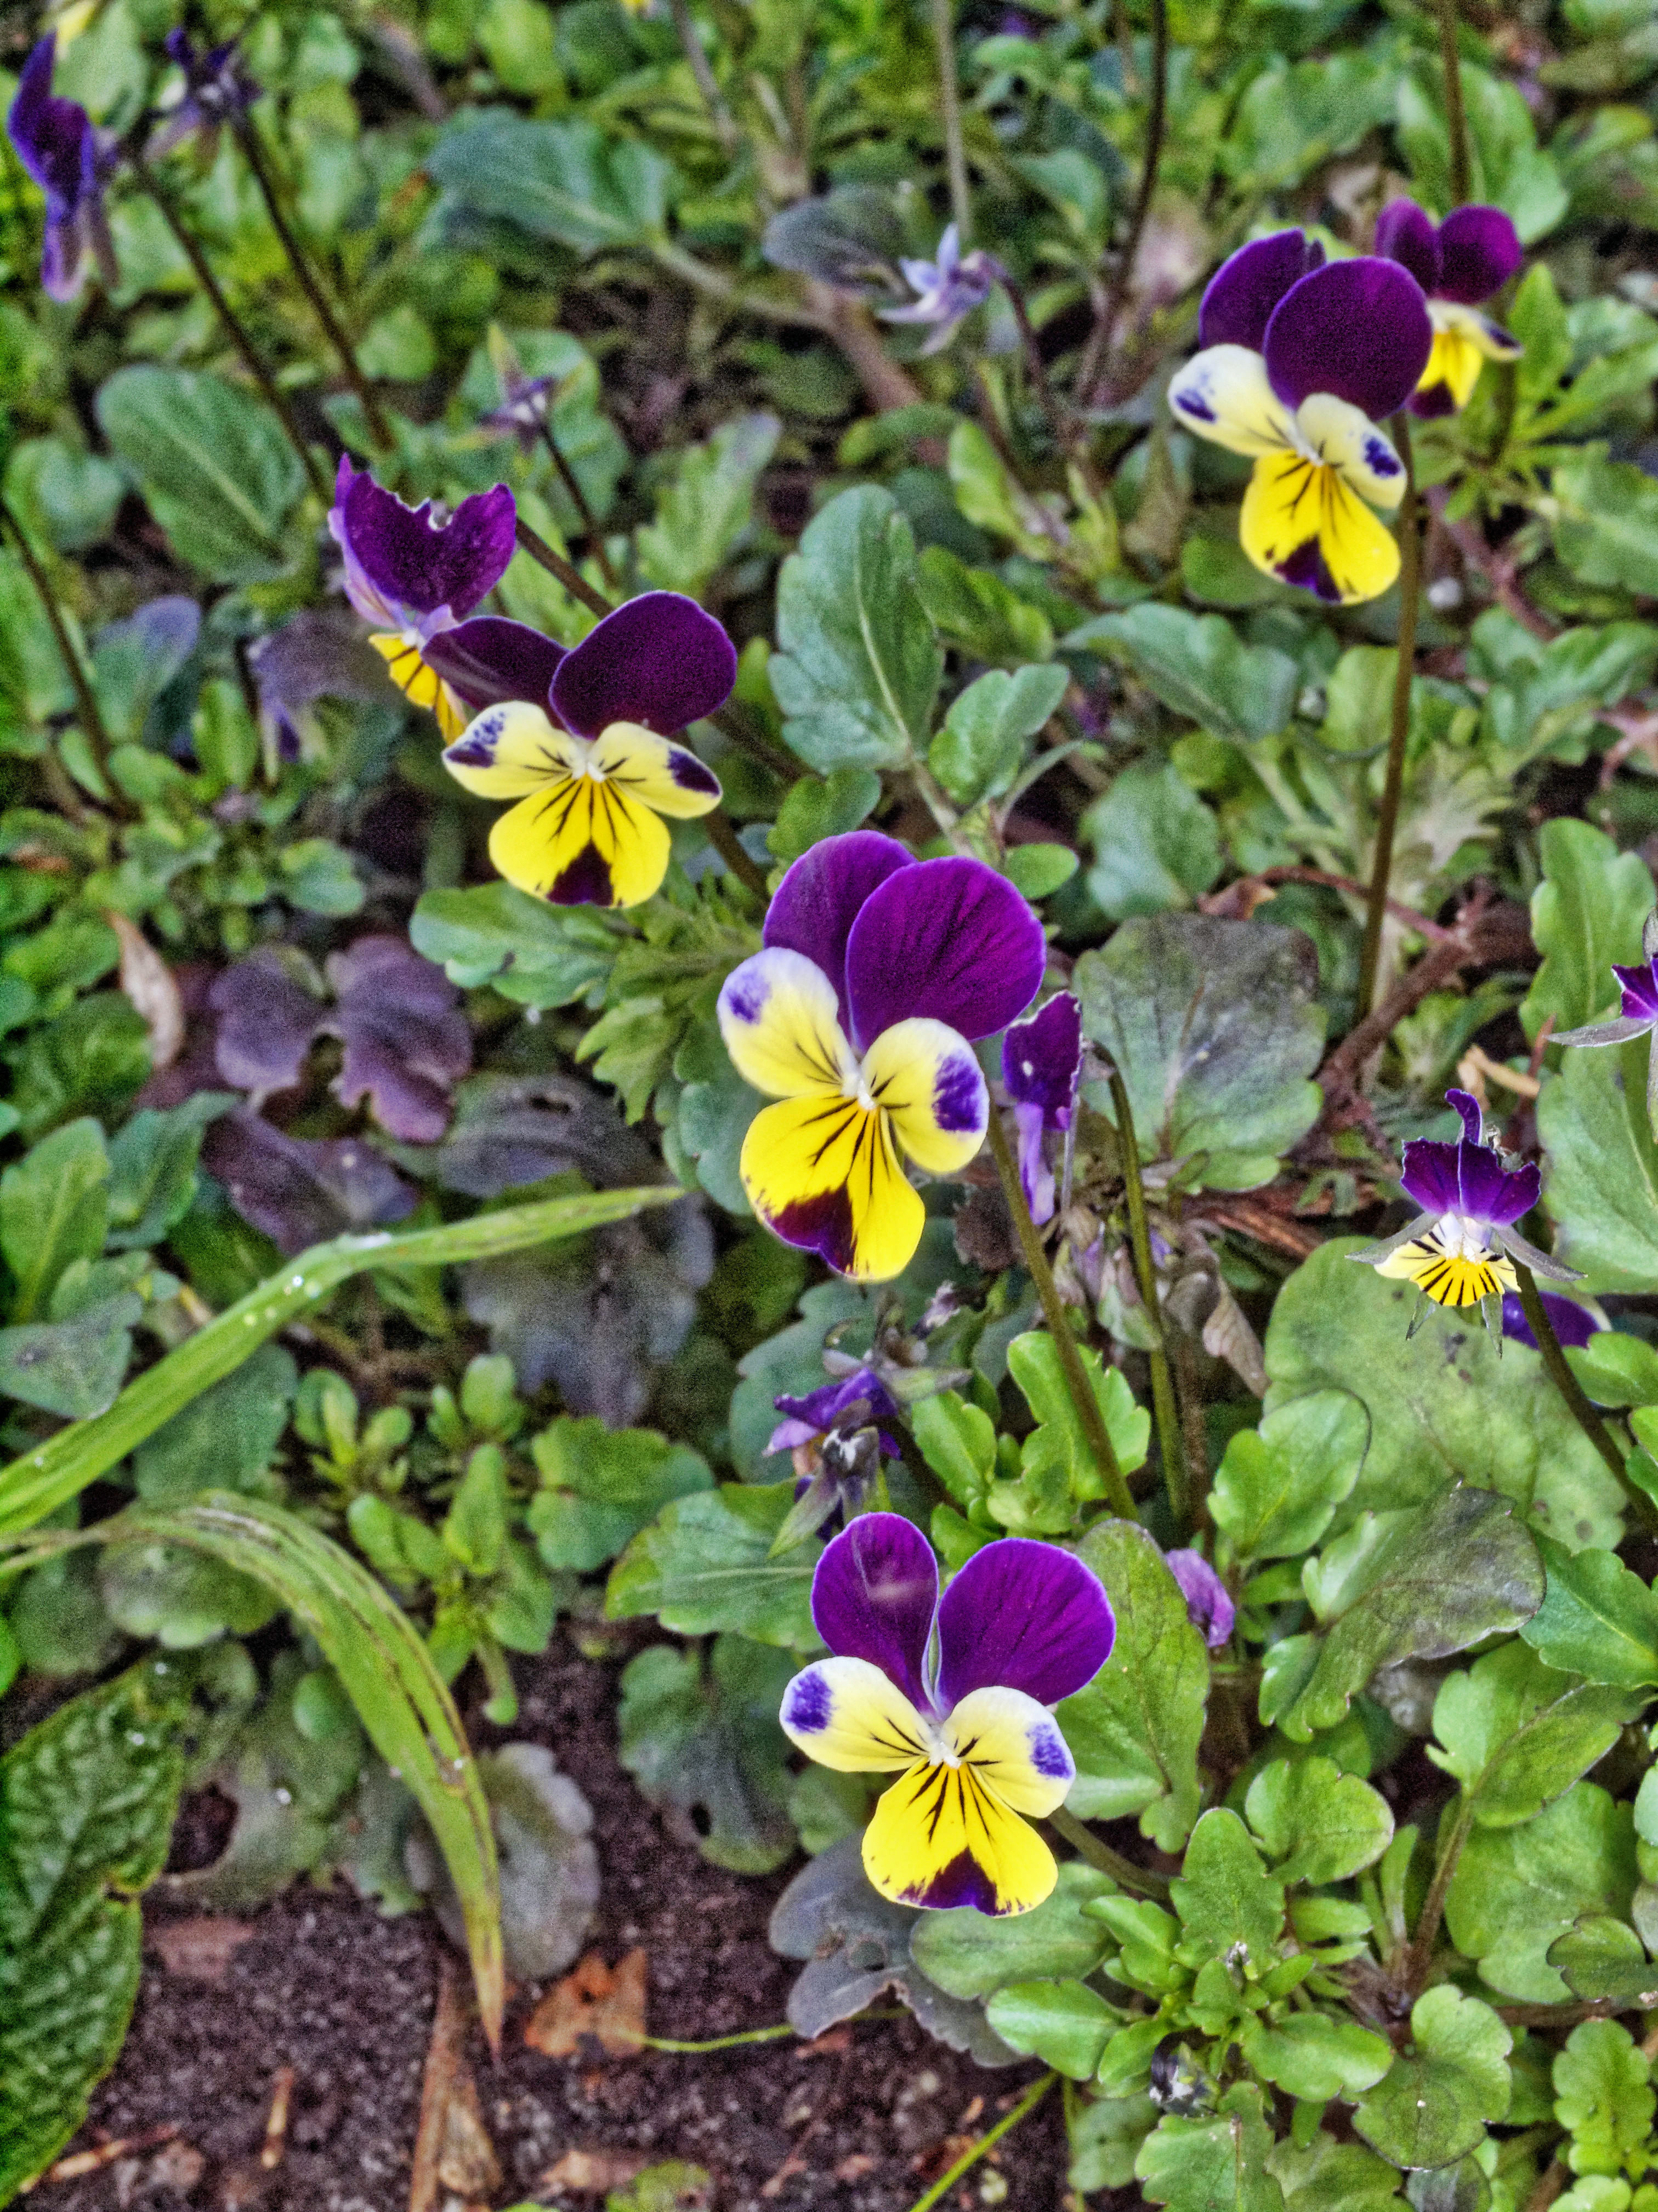 This should be Viola-tricolor-3.jpeg.  Is it missing?